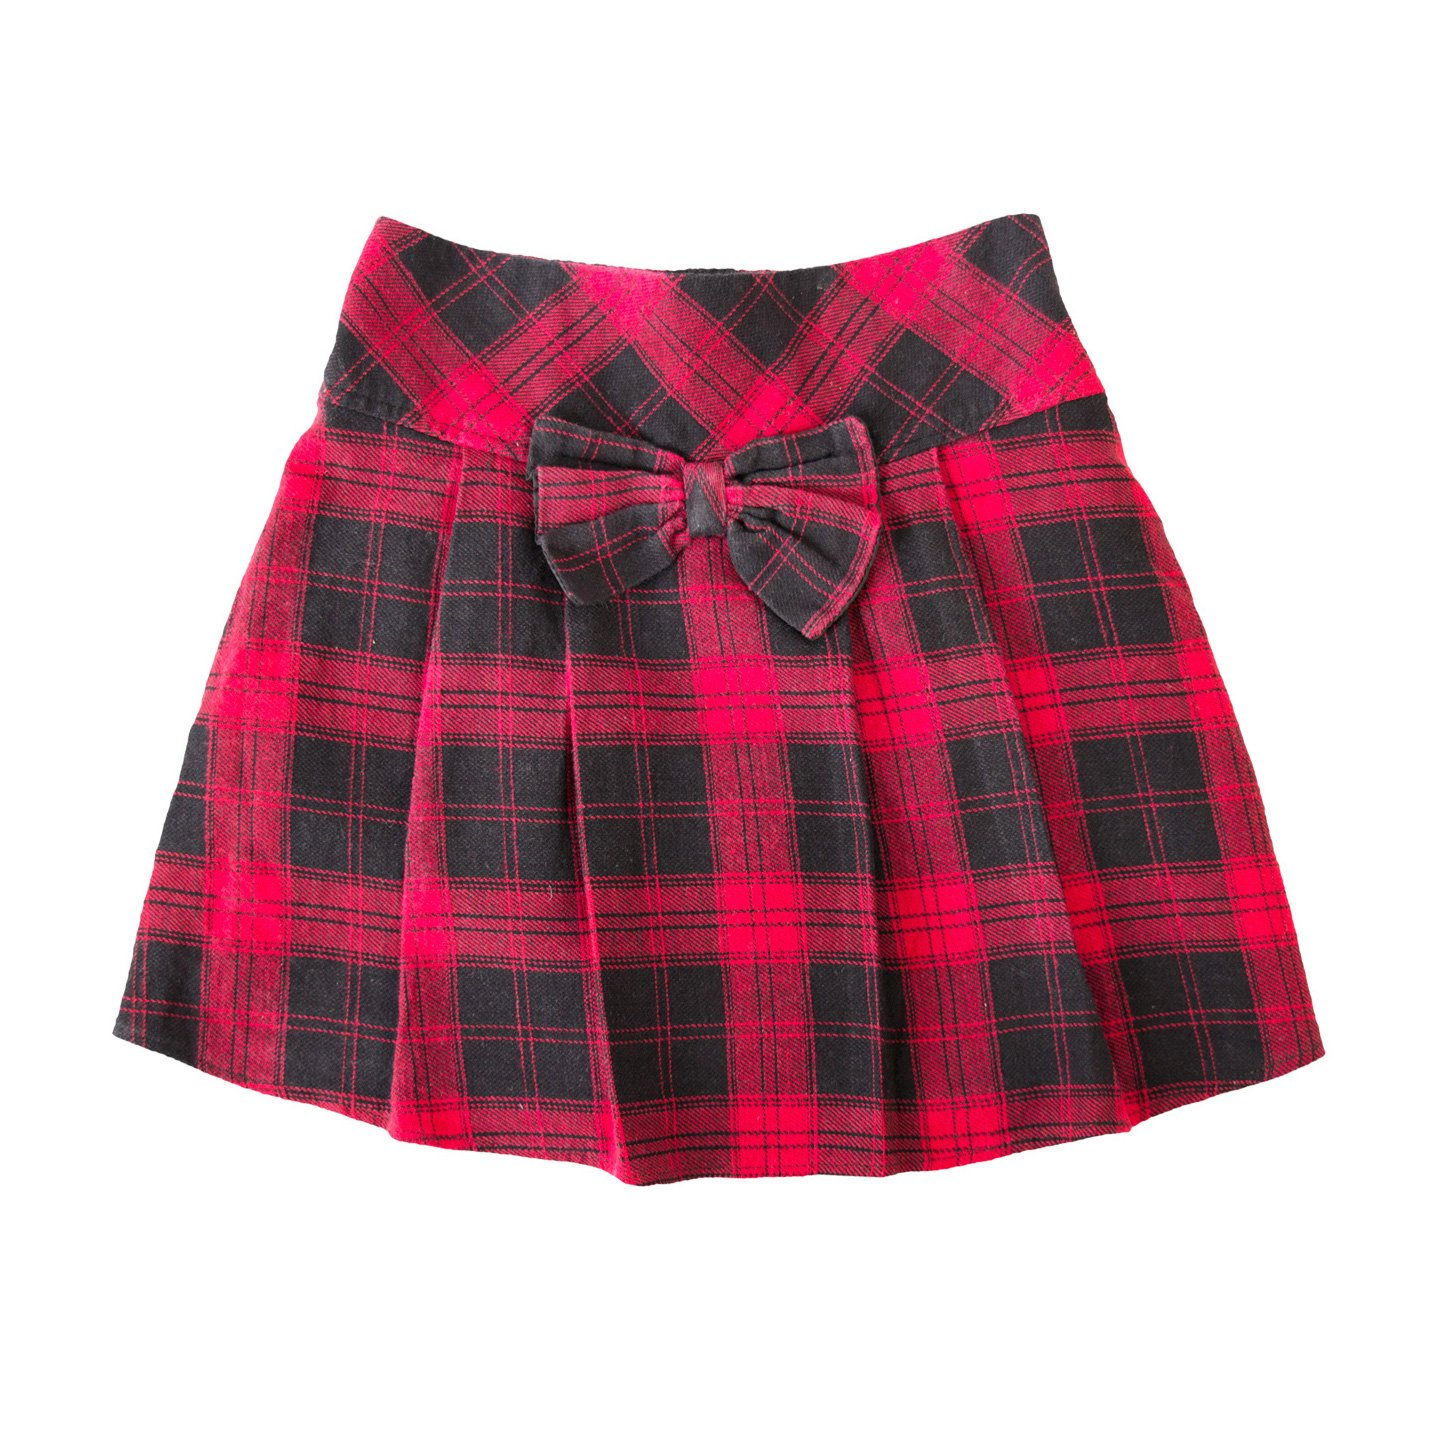 Kids checkered skirt